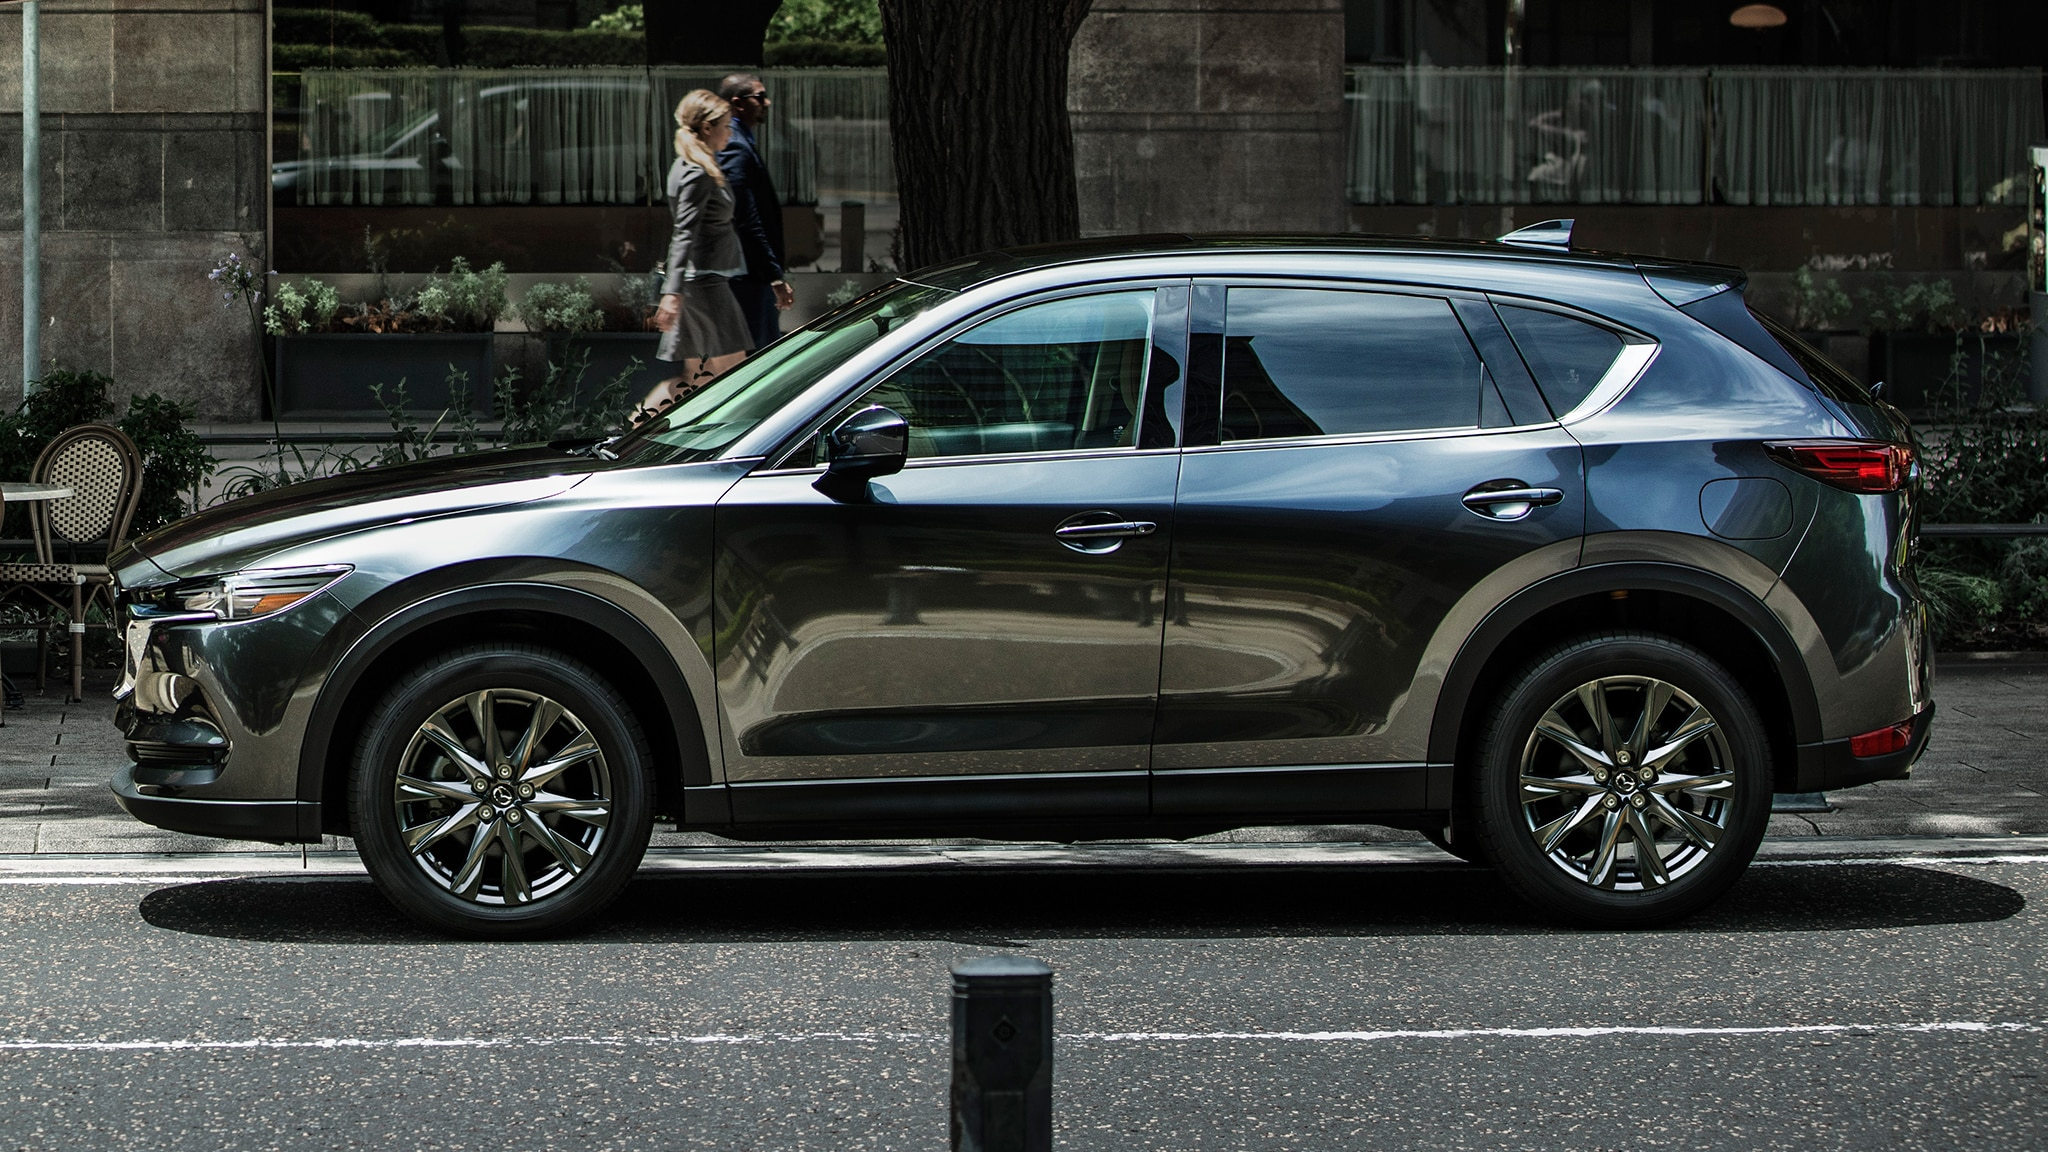 2019 Mazda Cx 5 Confirmed With Turbo Engine Signature Model